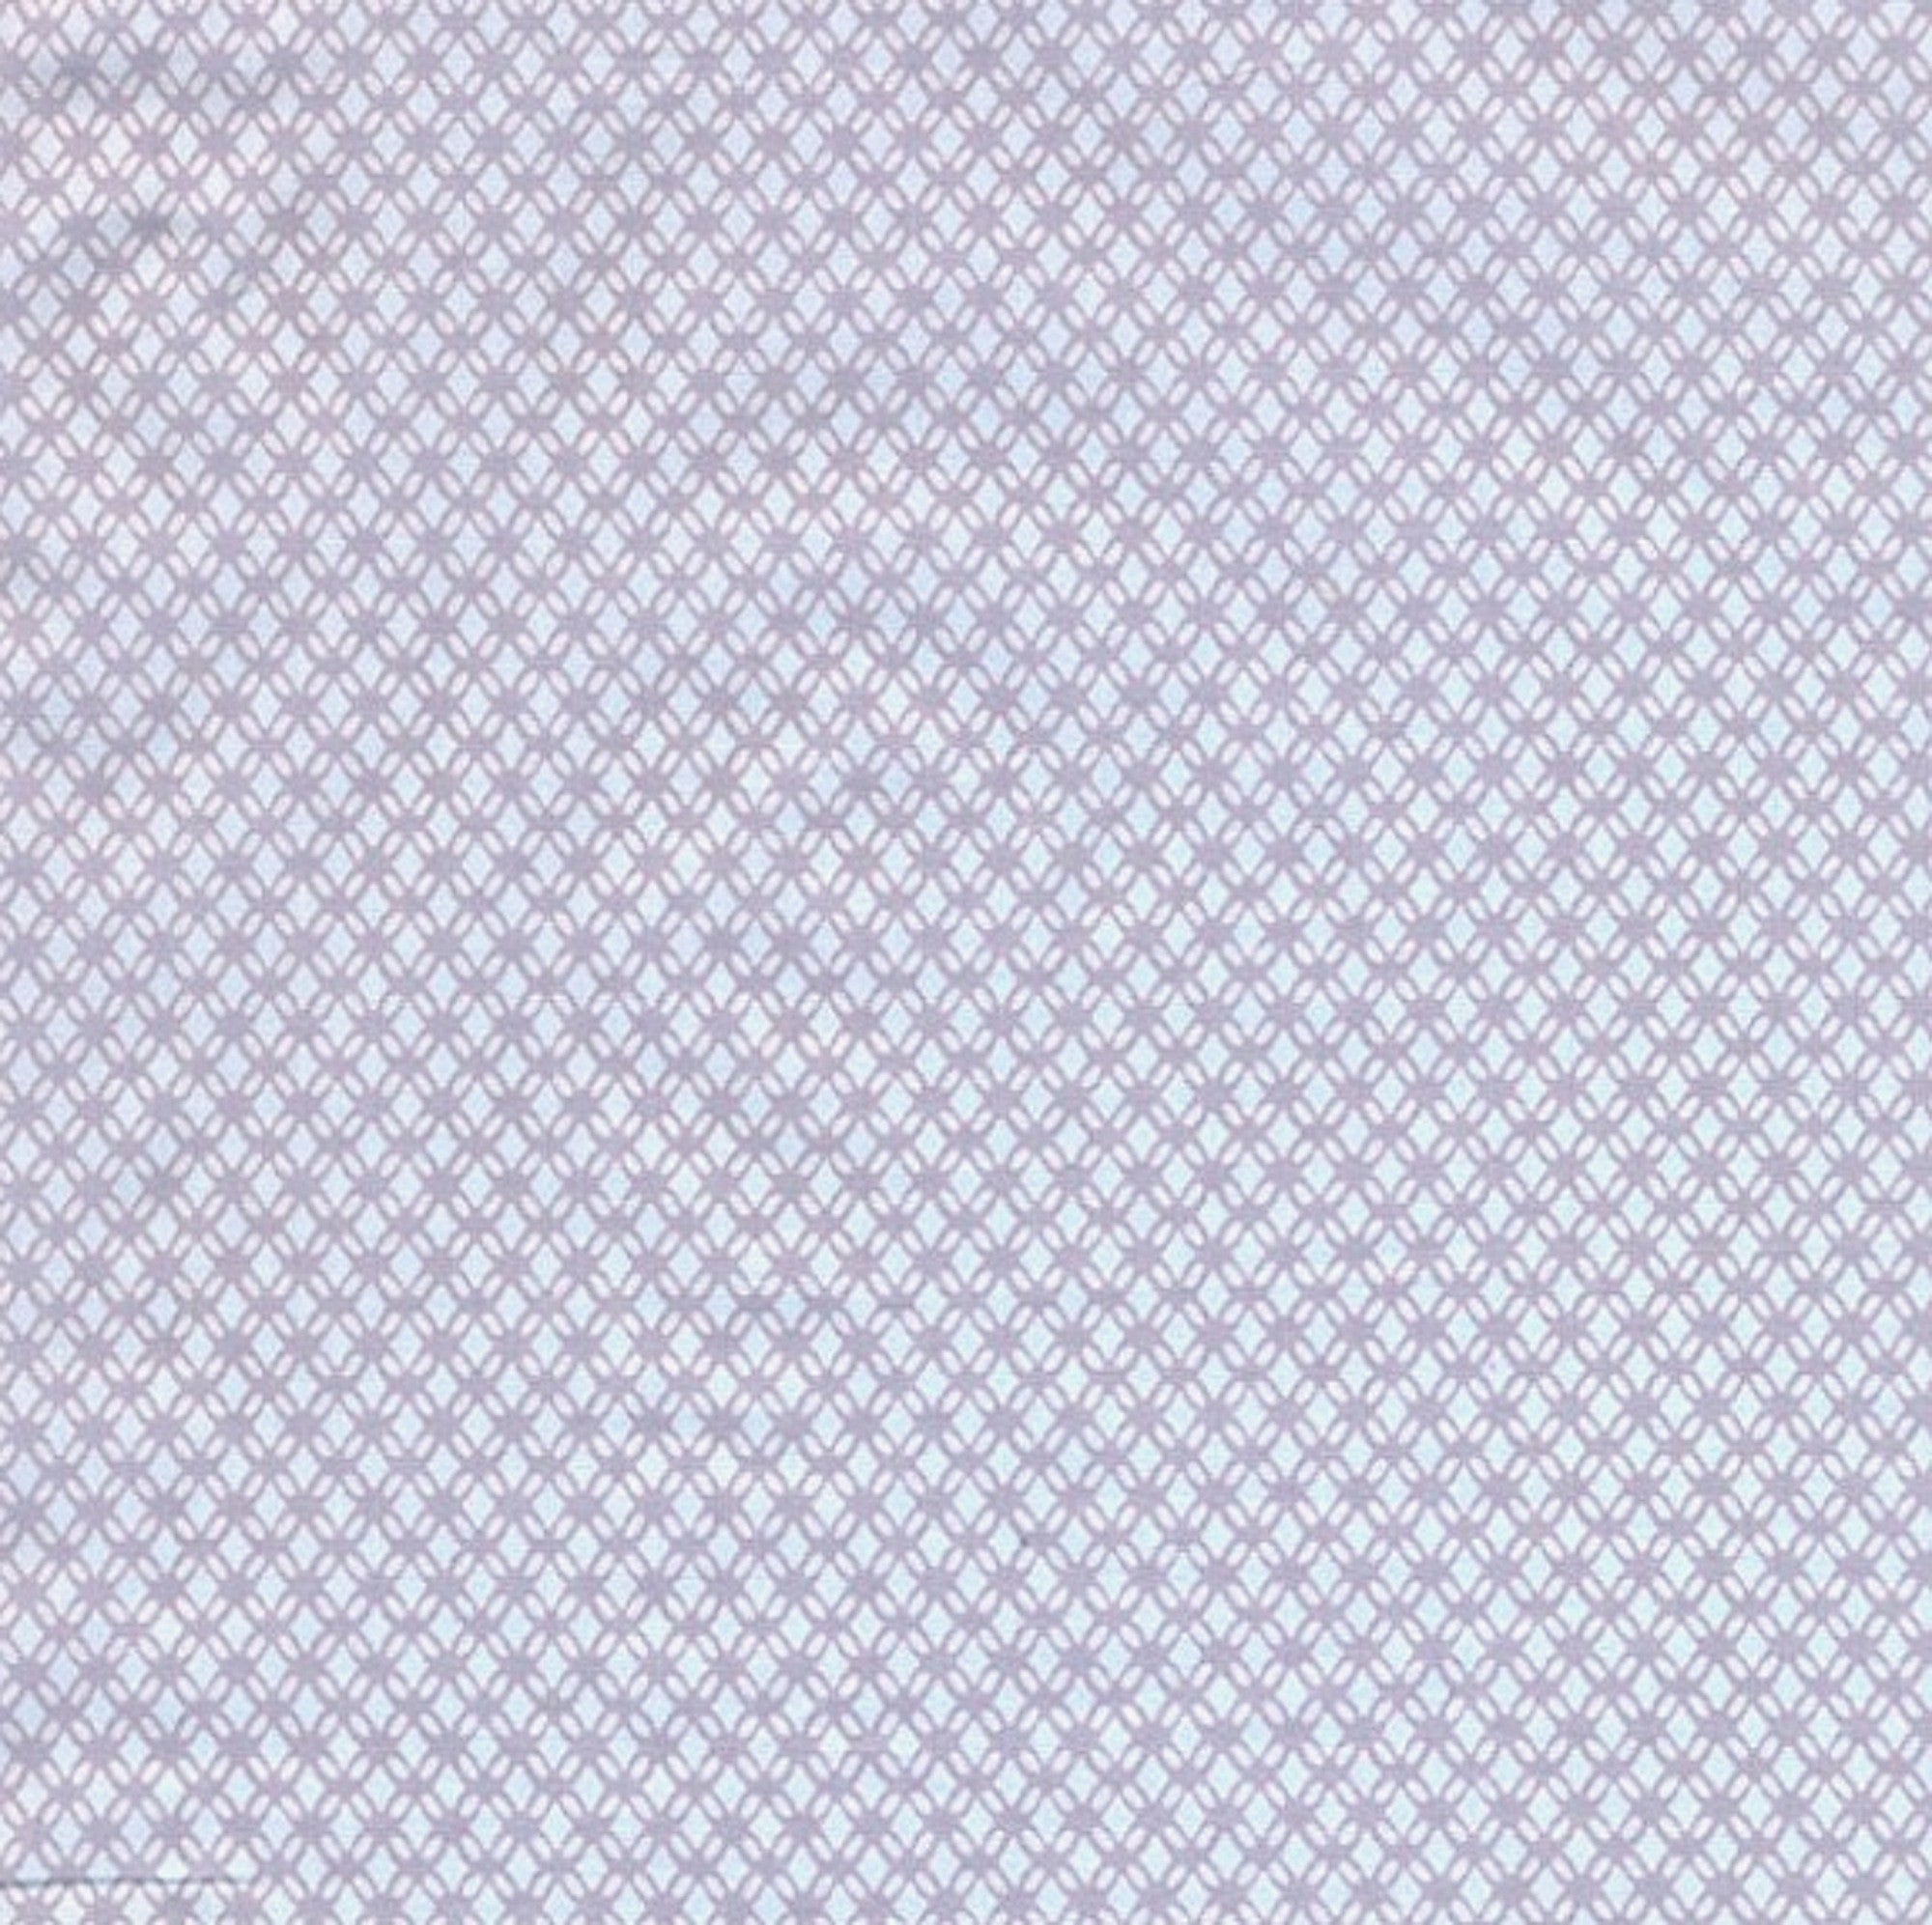 Cotton Percale - Fog Cecil Fabric